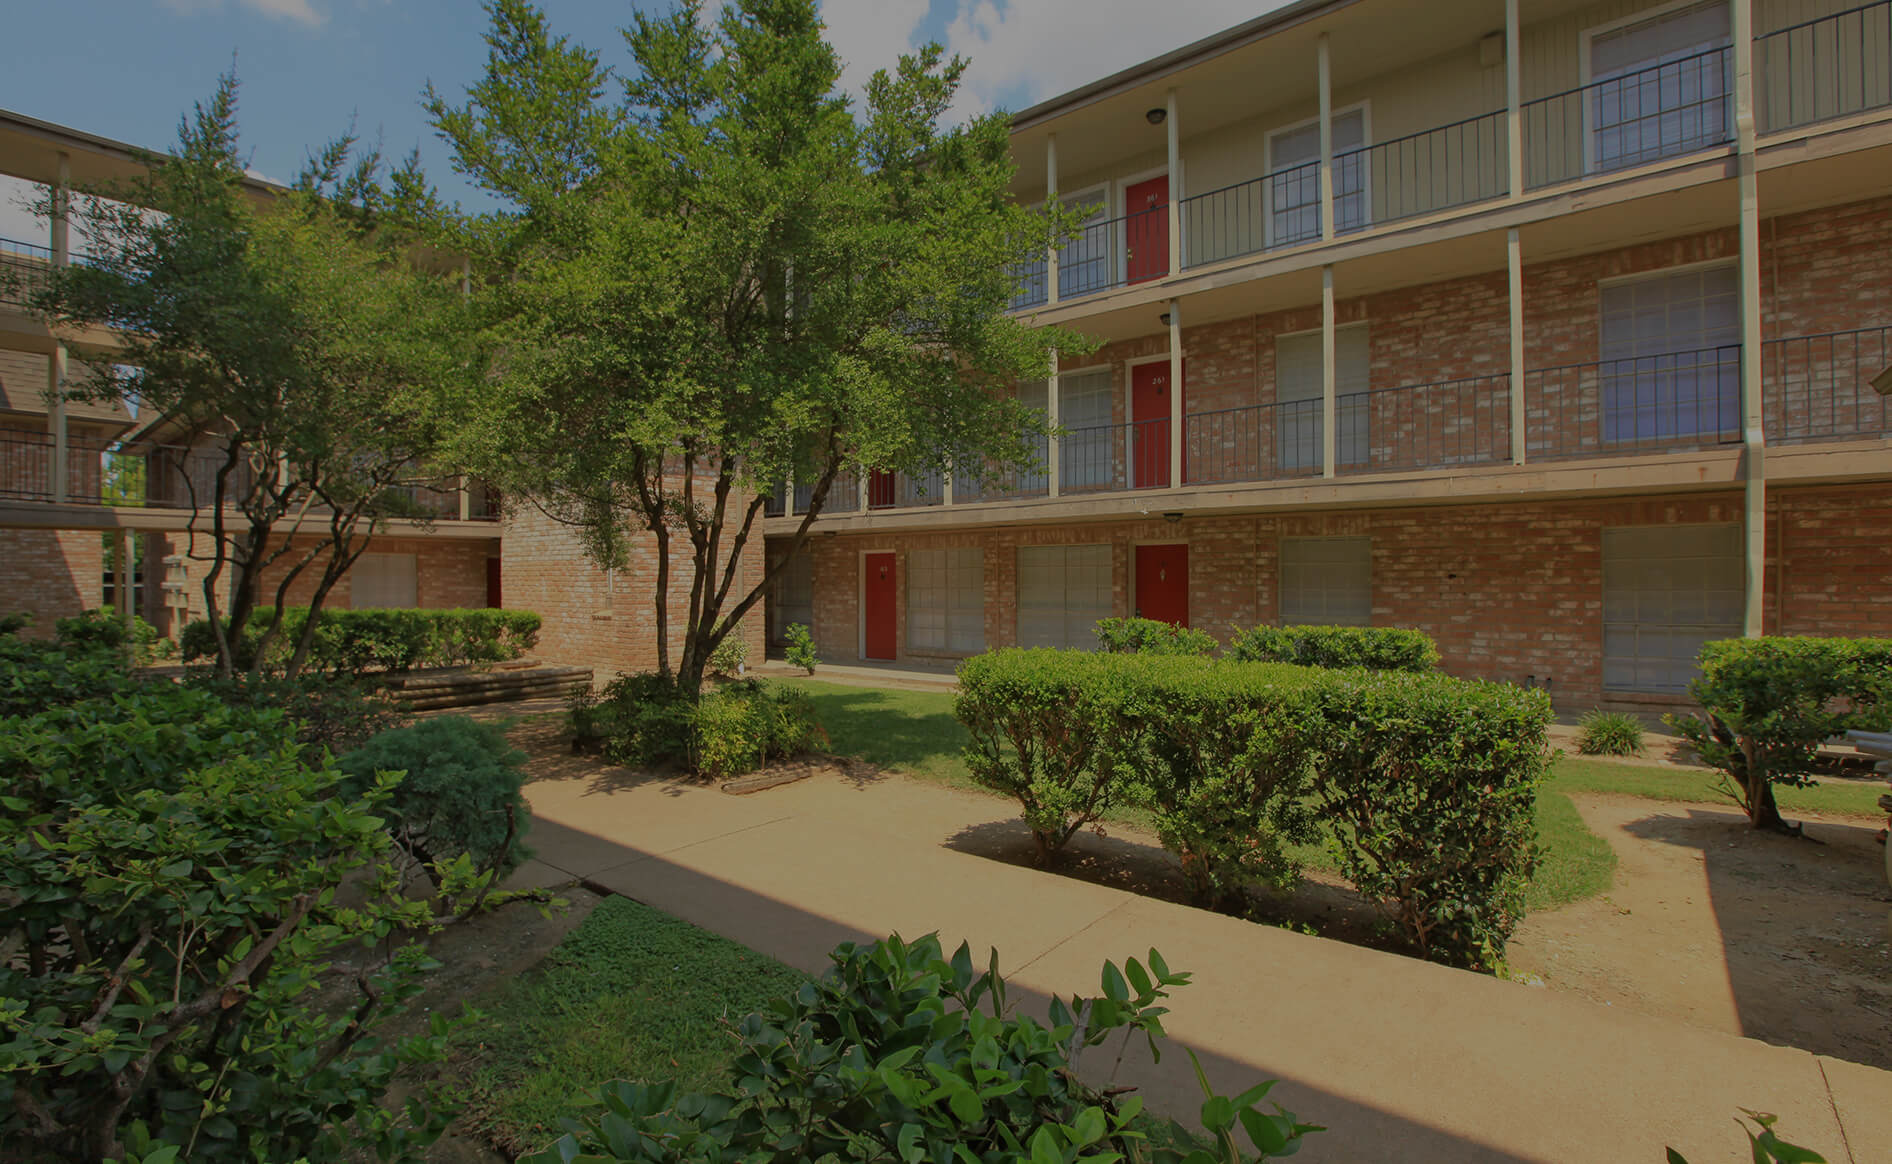 2 Bedroom Homes For Rent Houston Tx 28 Images The